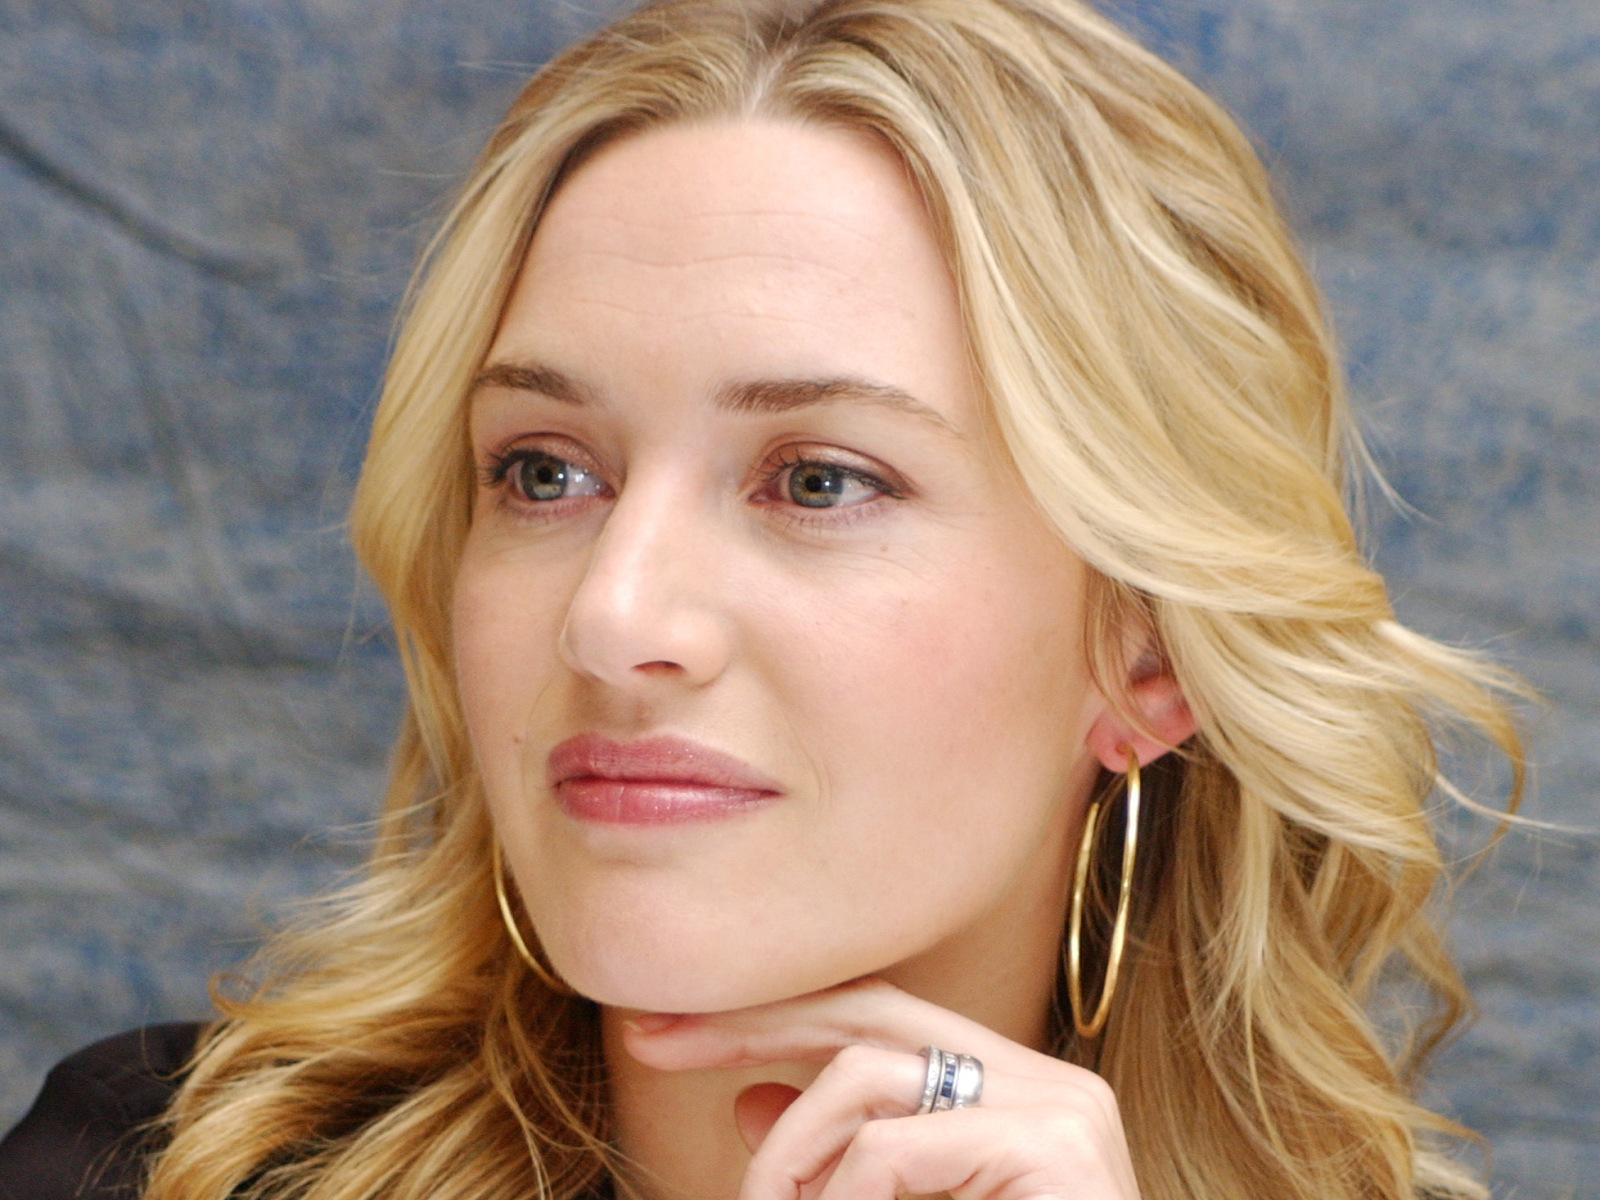 Kate Winslet Hd Wallpapers For Desktop Download